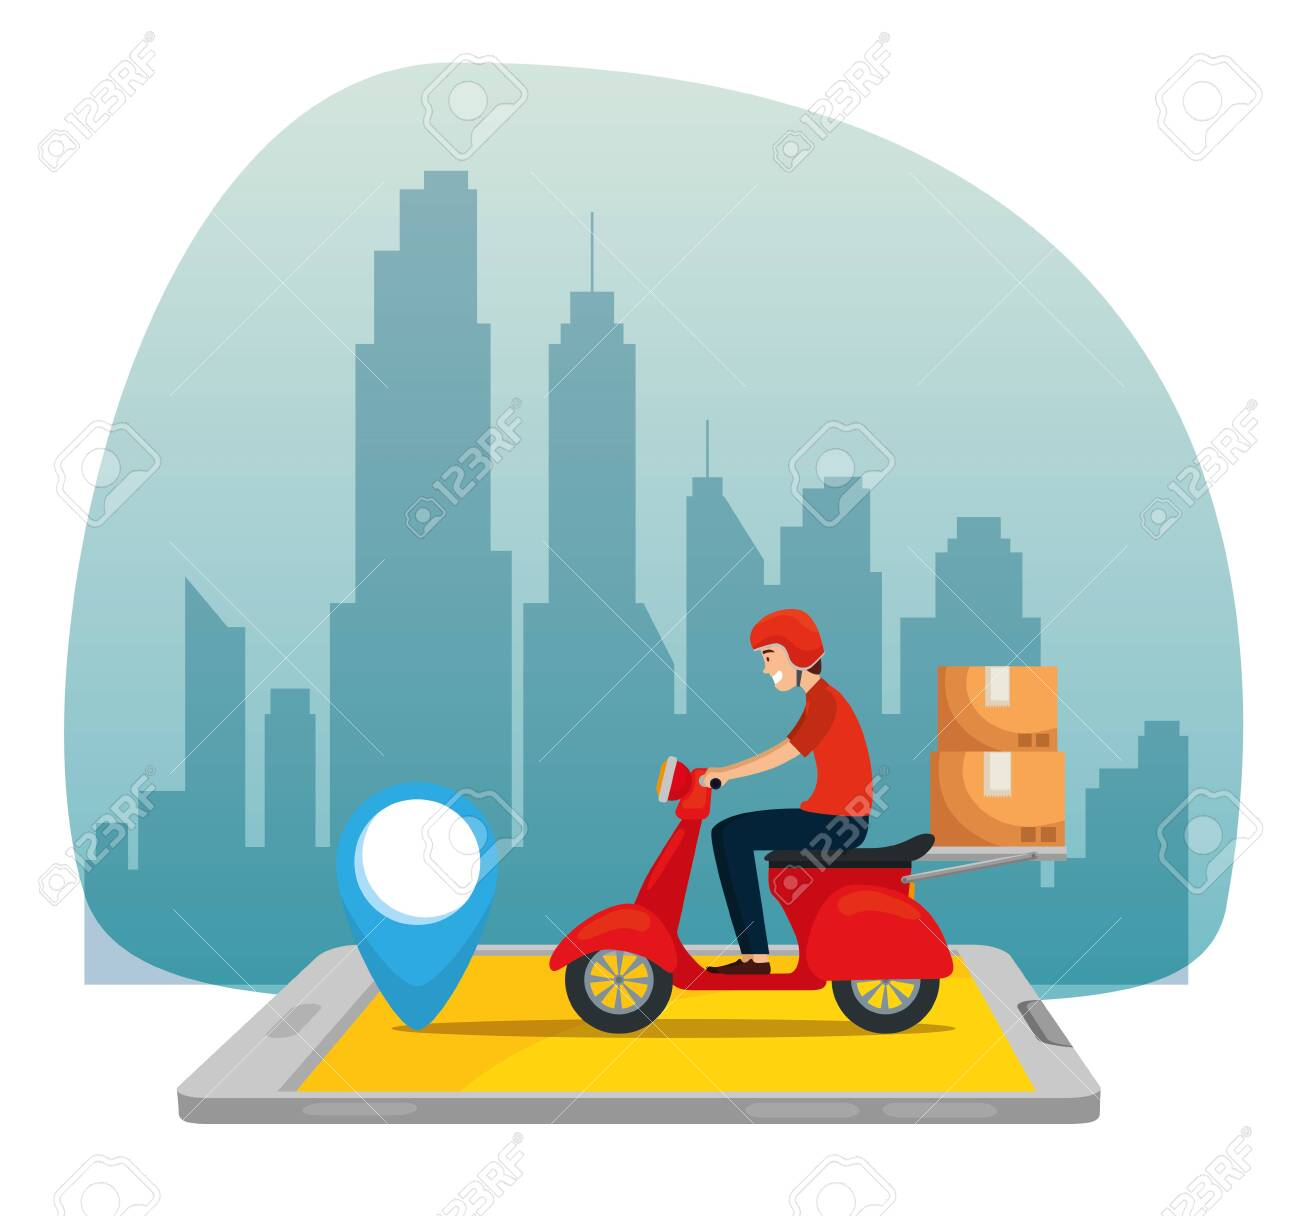 man with motorcycle and boxes packages in the smartphone to delivery service vector illustration - 137221395